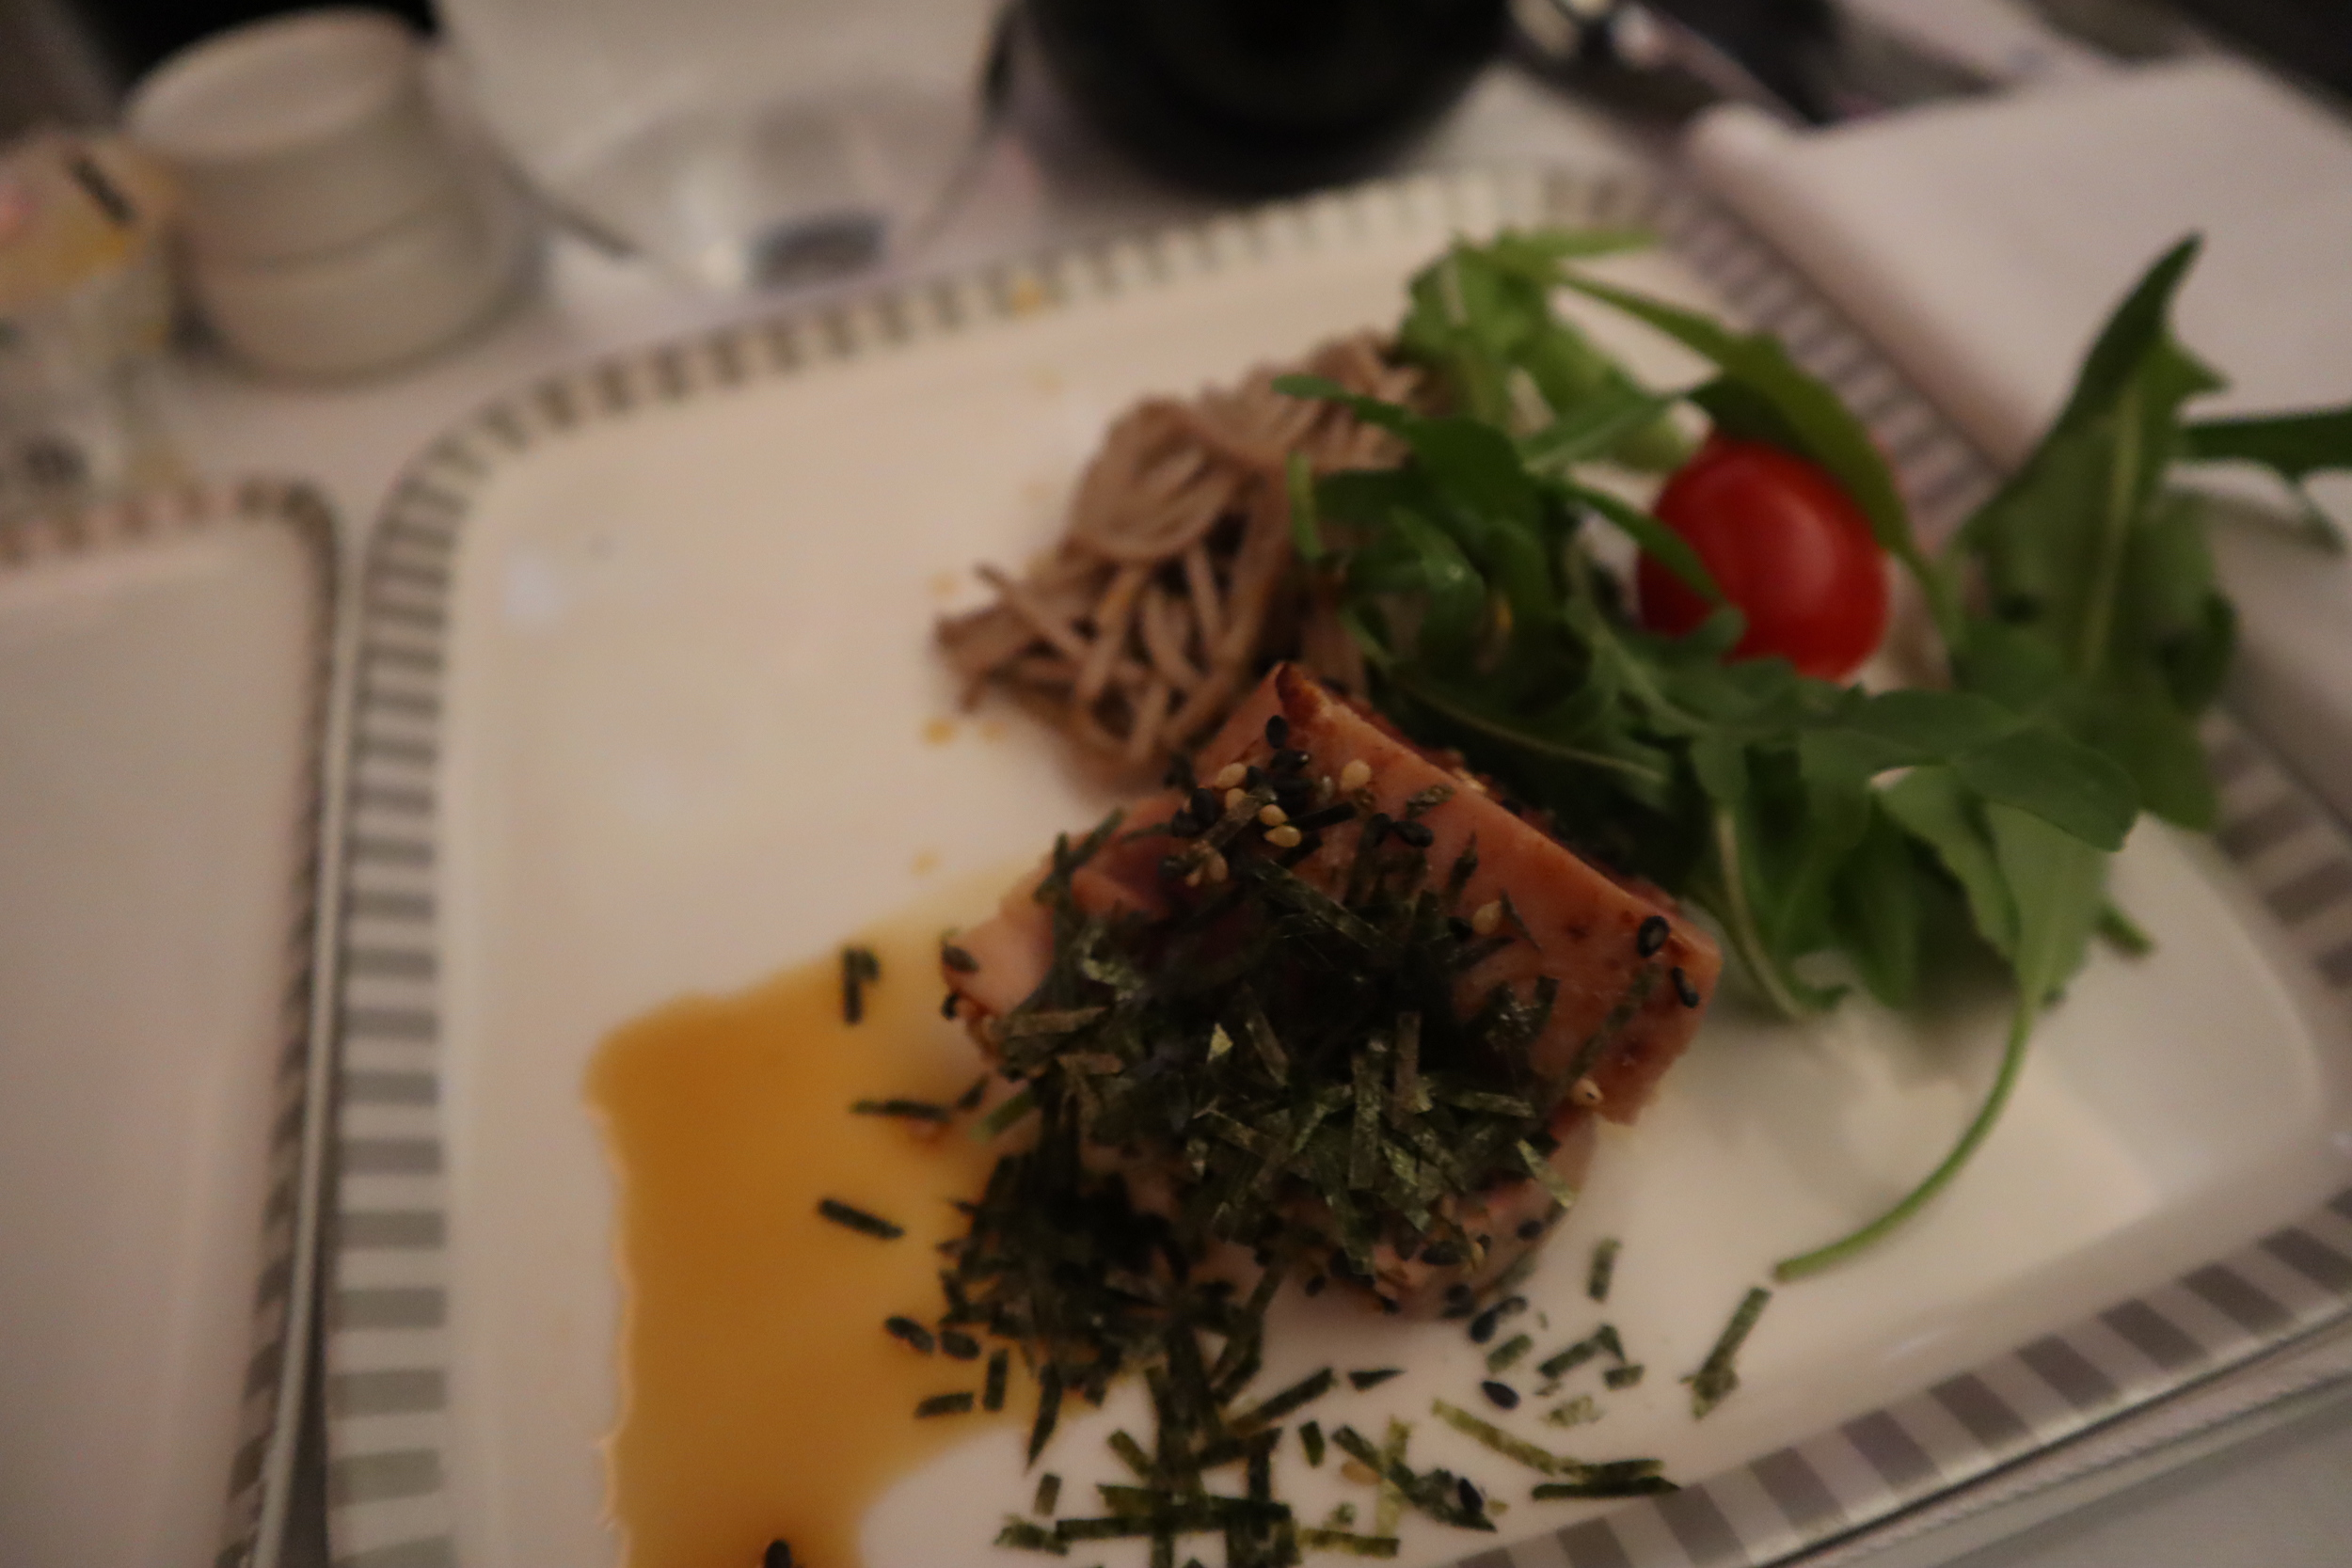 Singapore Airlines 787-10 business class – Soba noodles with seared albacore tuna